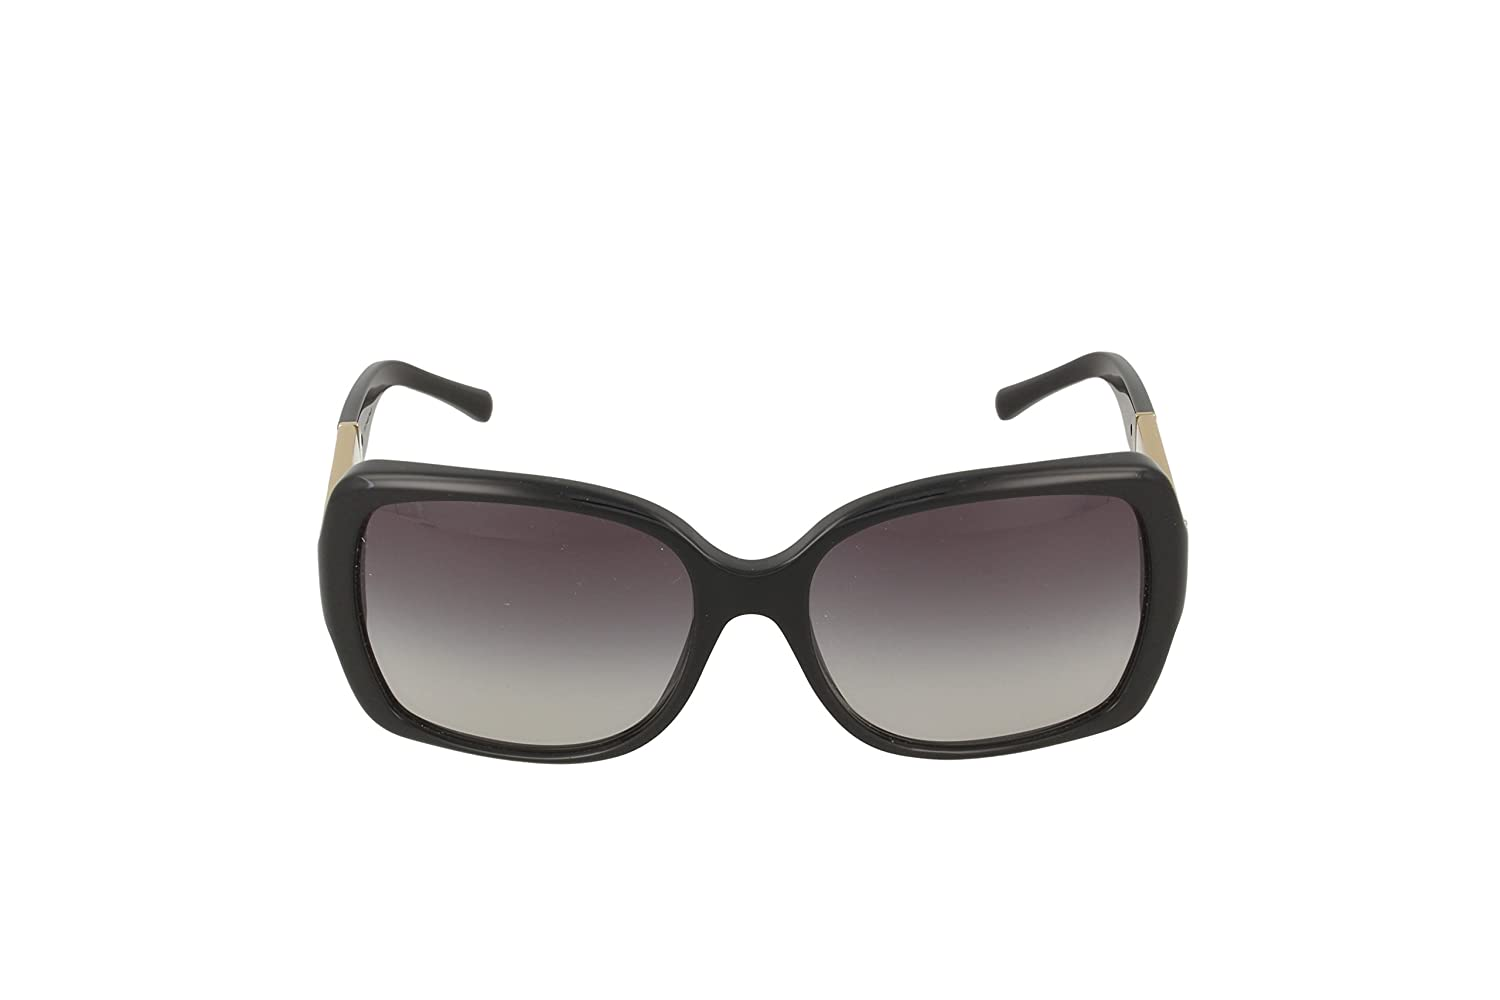 08e8844b54aa Amazon.com  Burberry BE4160 34338G Black BE4160 Square Sunglasses Lens  Category 3 Size 58mm  Burberry  Shoes